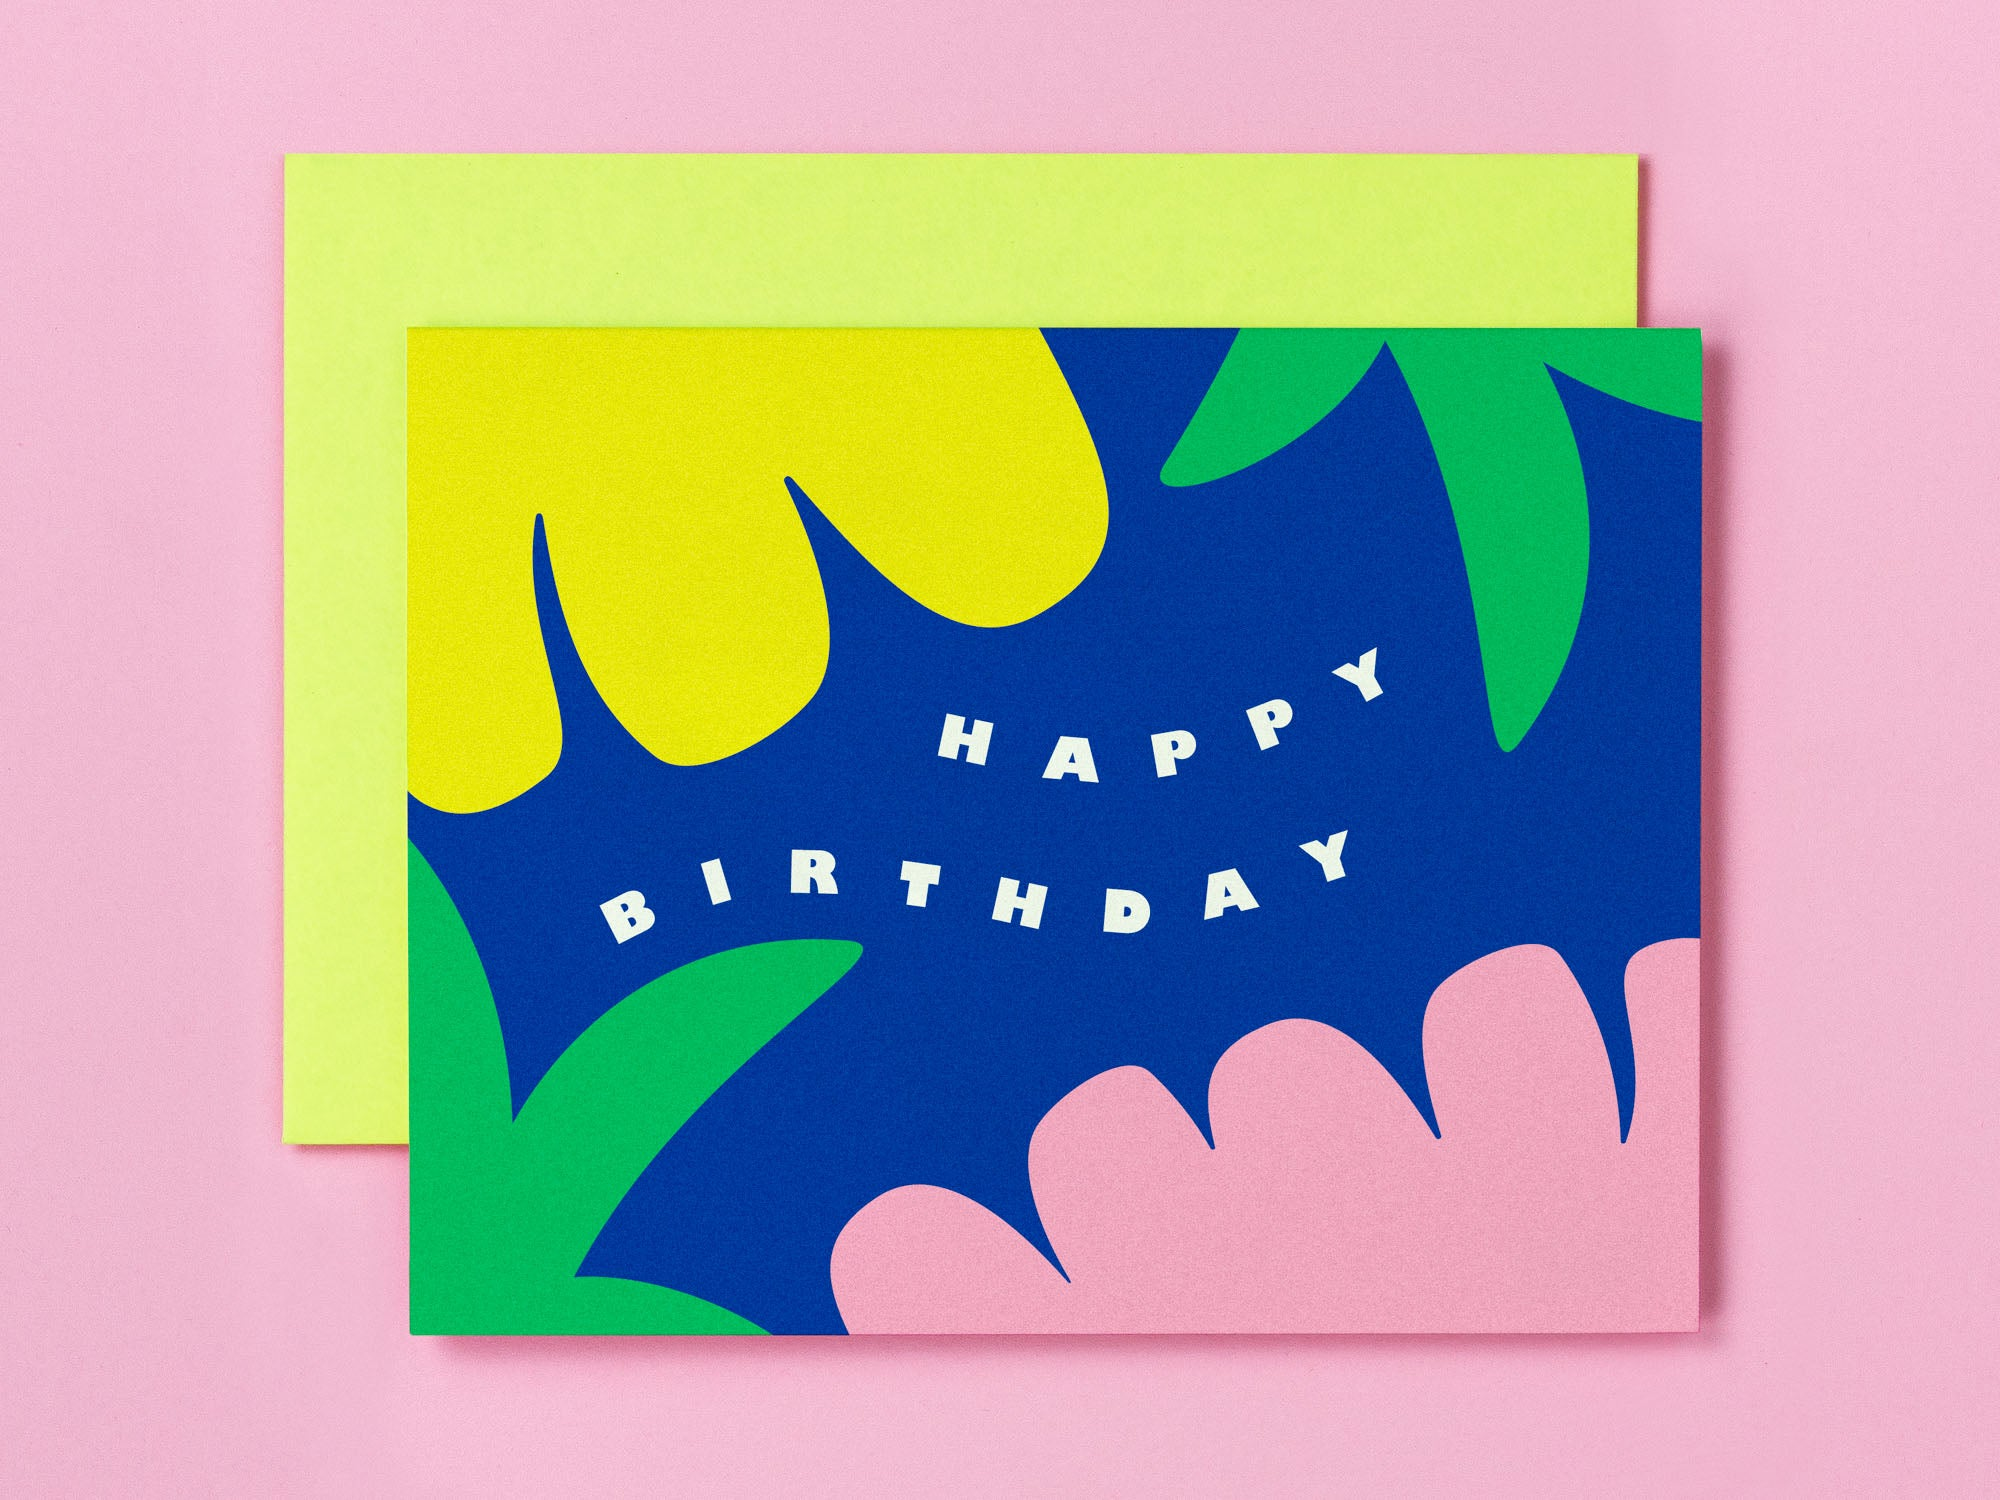 Tropical happy birthday card with abstract tropical floral illustration. Made in USA by My Darlin' @mydarlin_bk